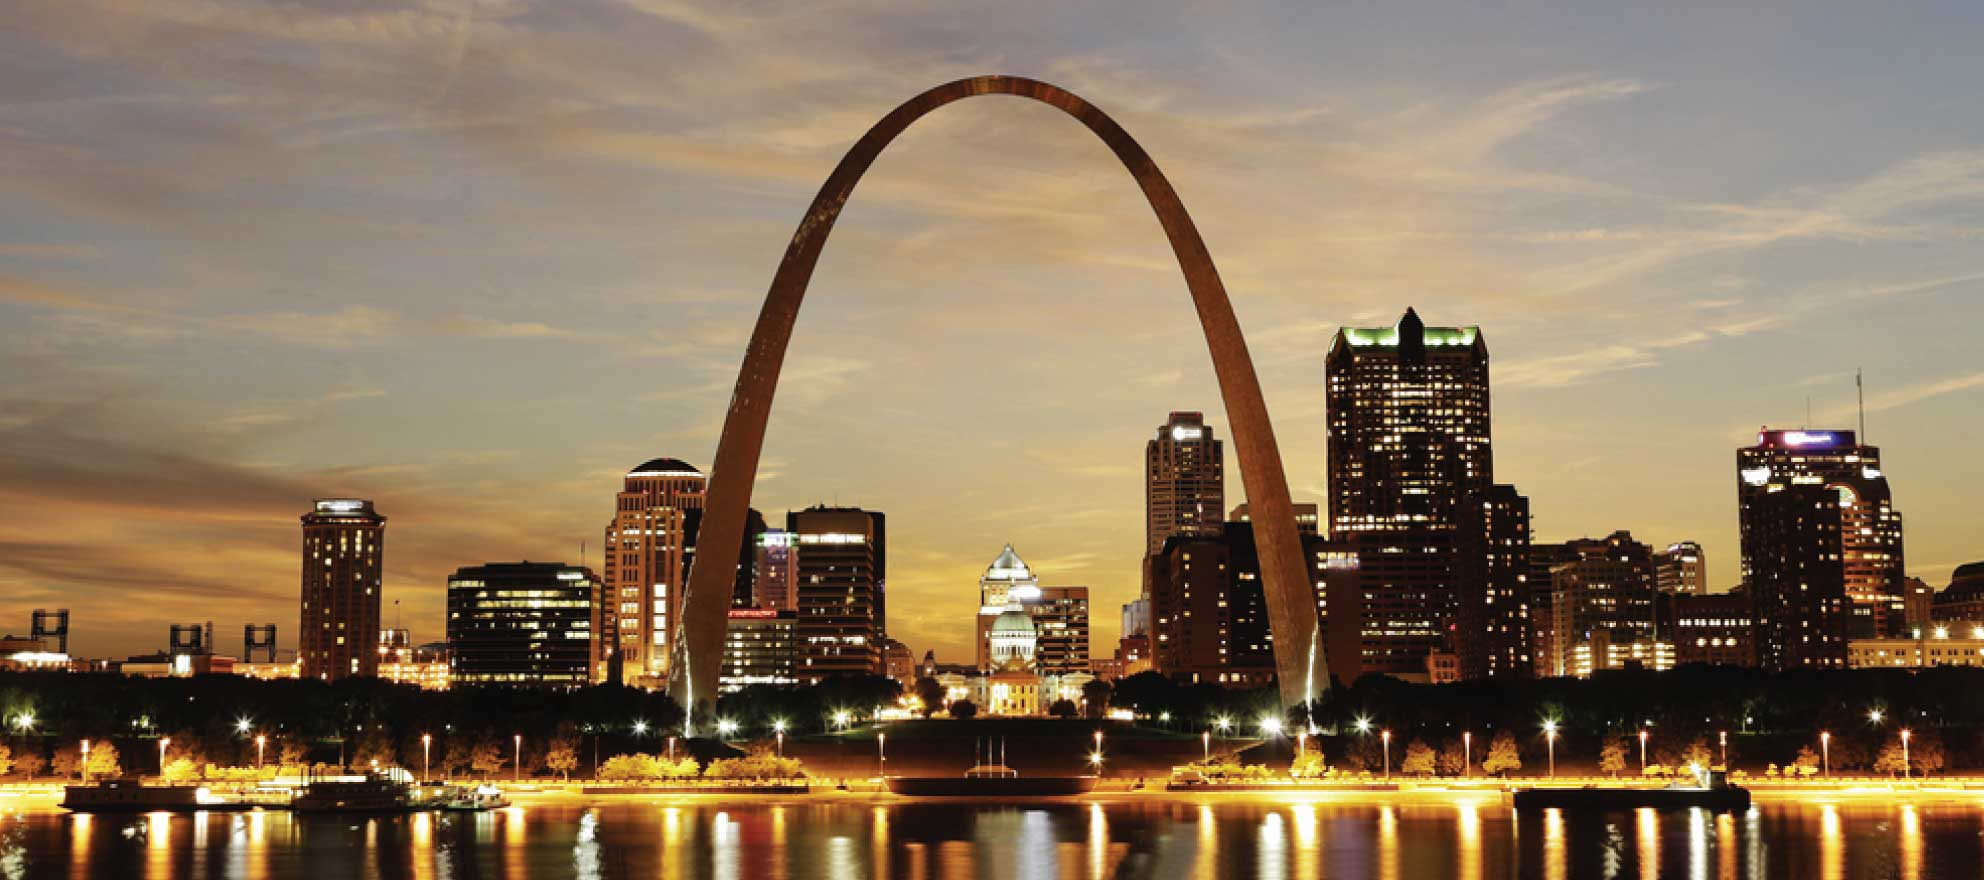 Redfin glides into tech-friendly St. Louis